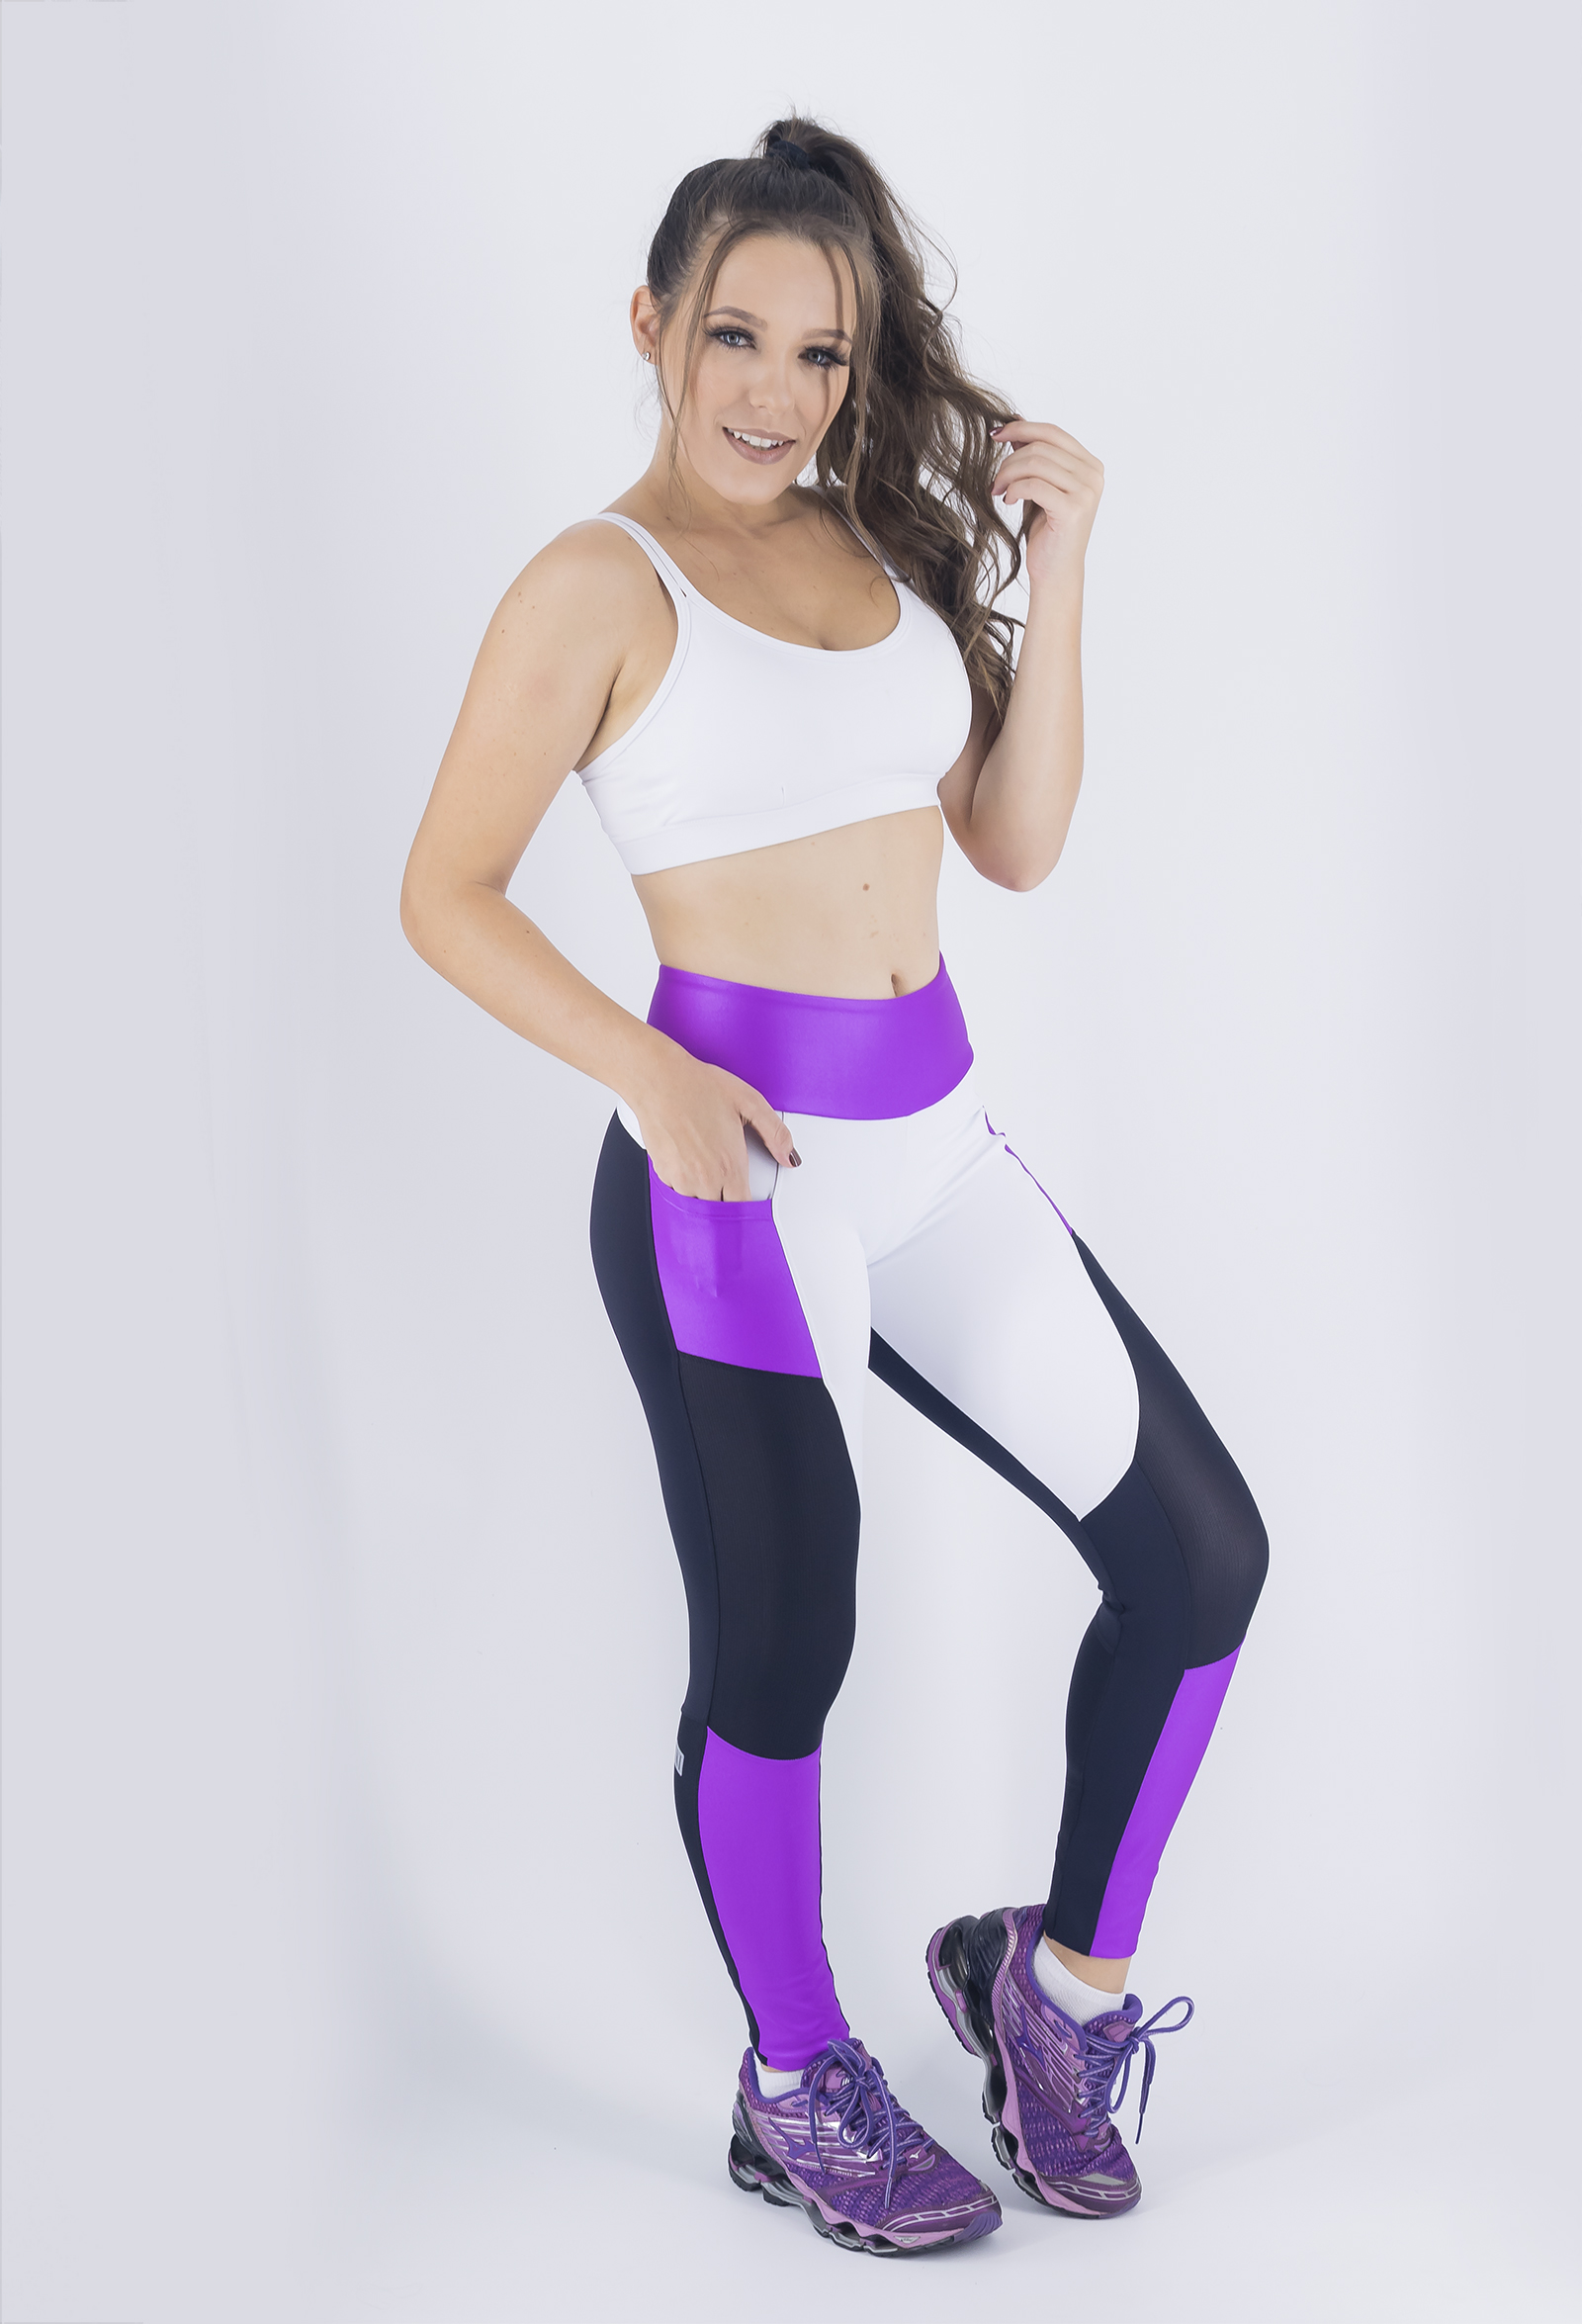 Top Switch Branco, Coleção Just For You - NKT Fitwear Moda Fitness